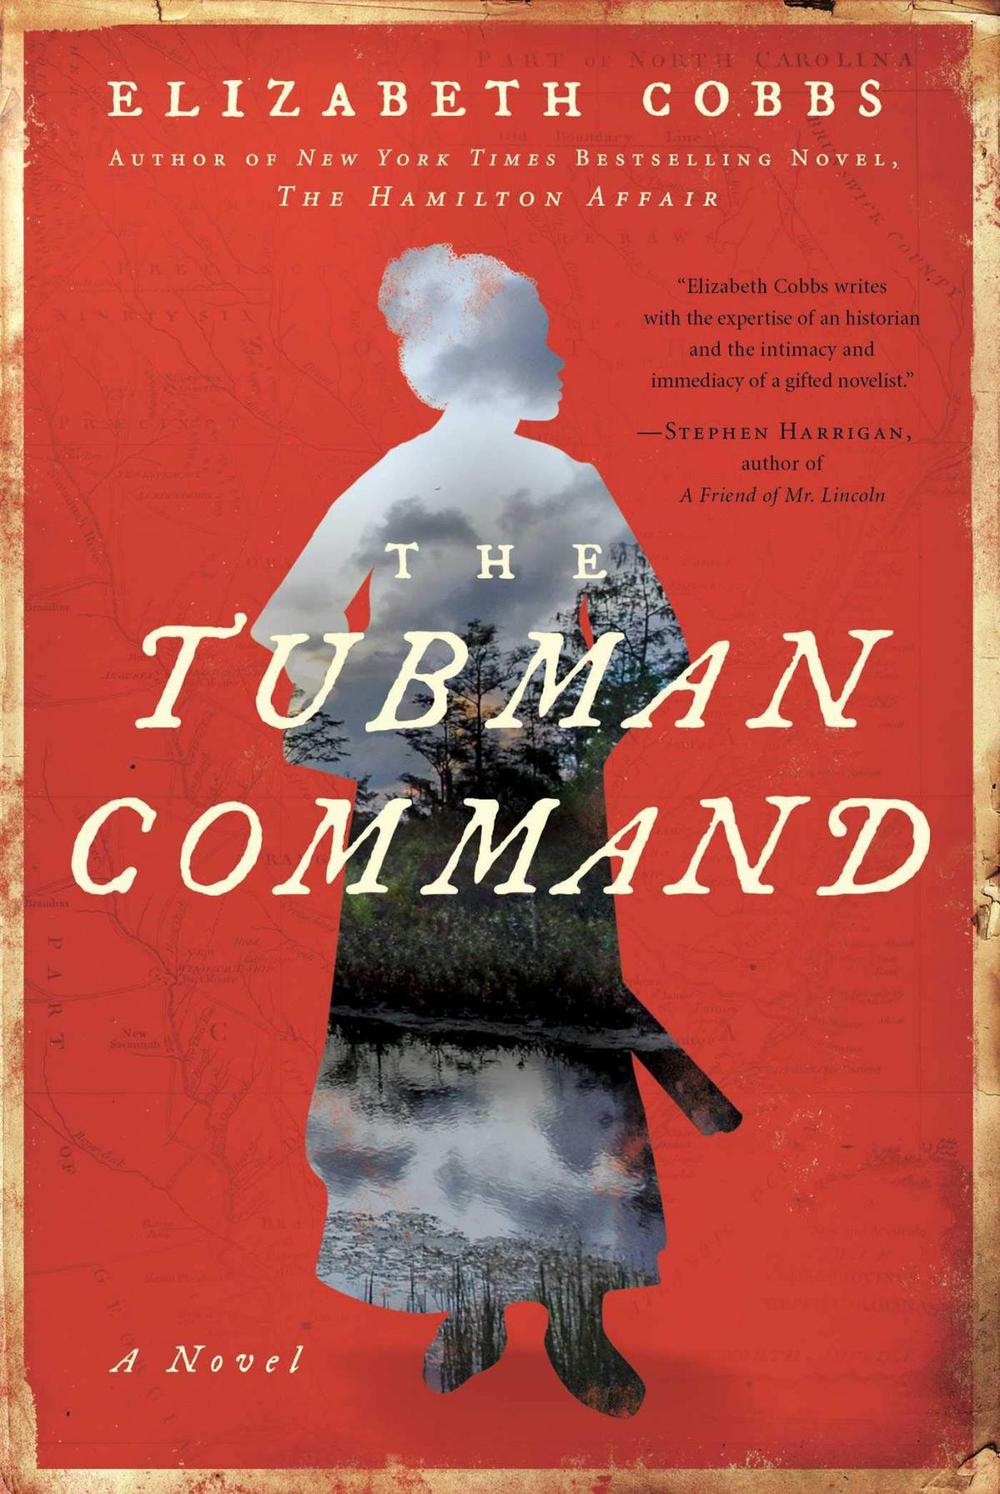 """The Tubman Command"" imagines what life was like for Harriet Tubman as a scout in the Union army."